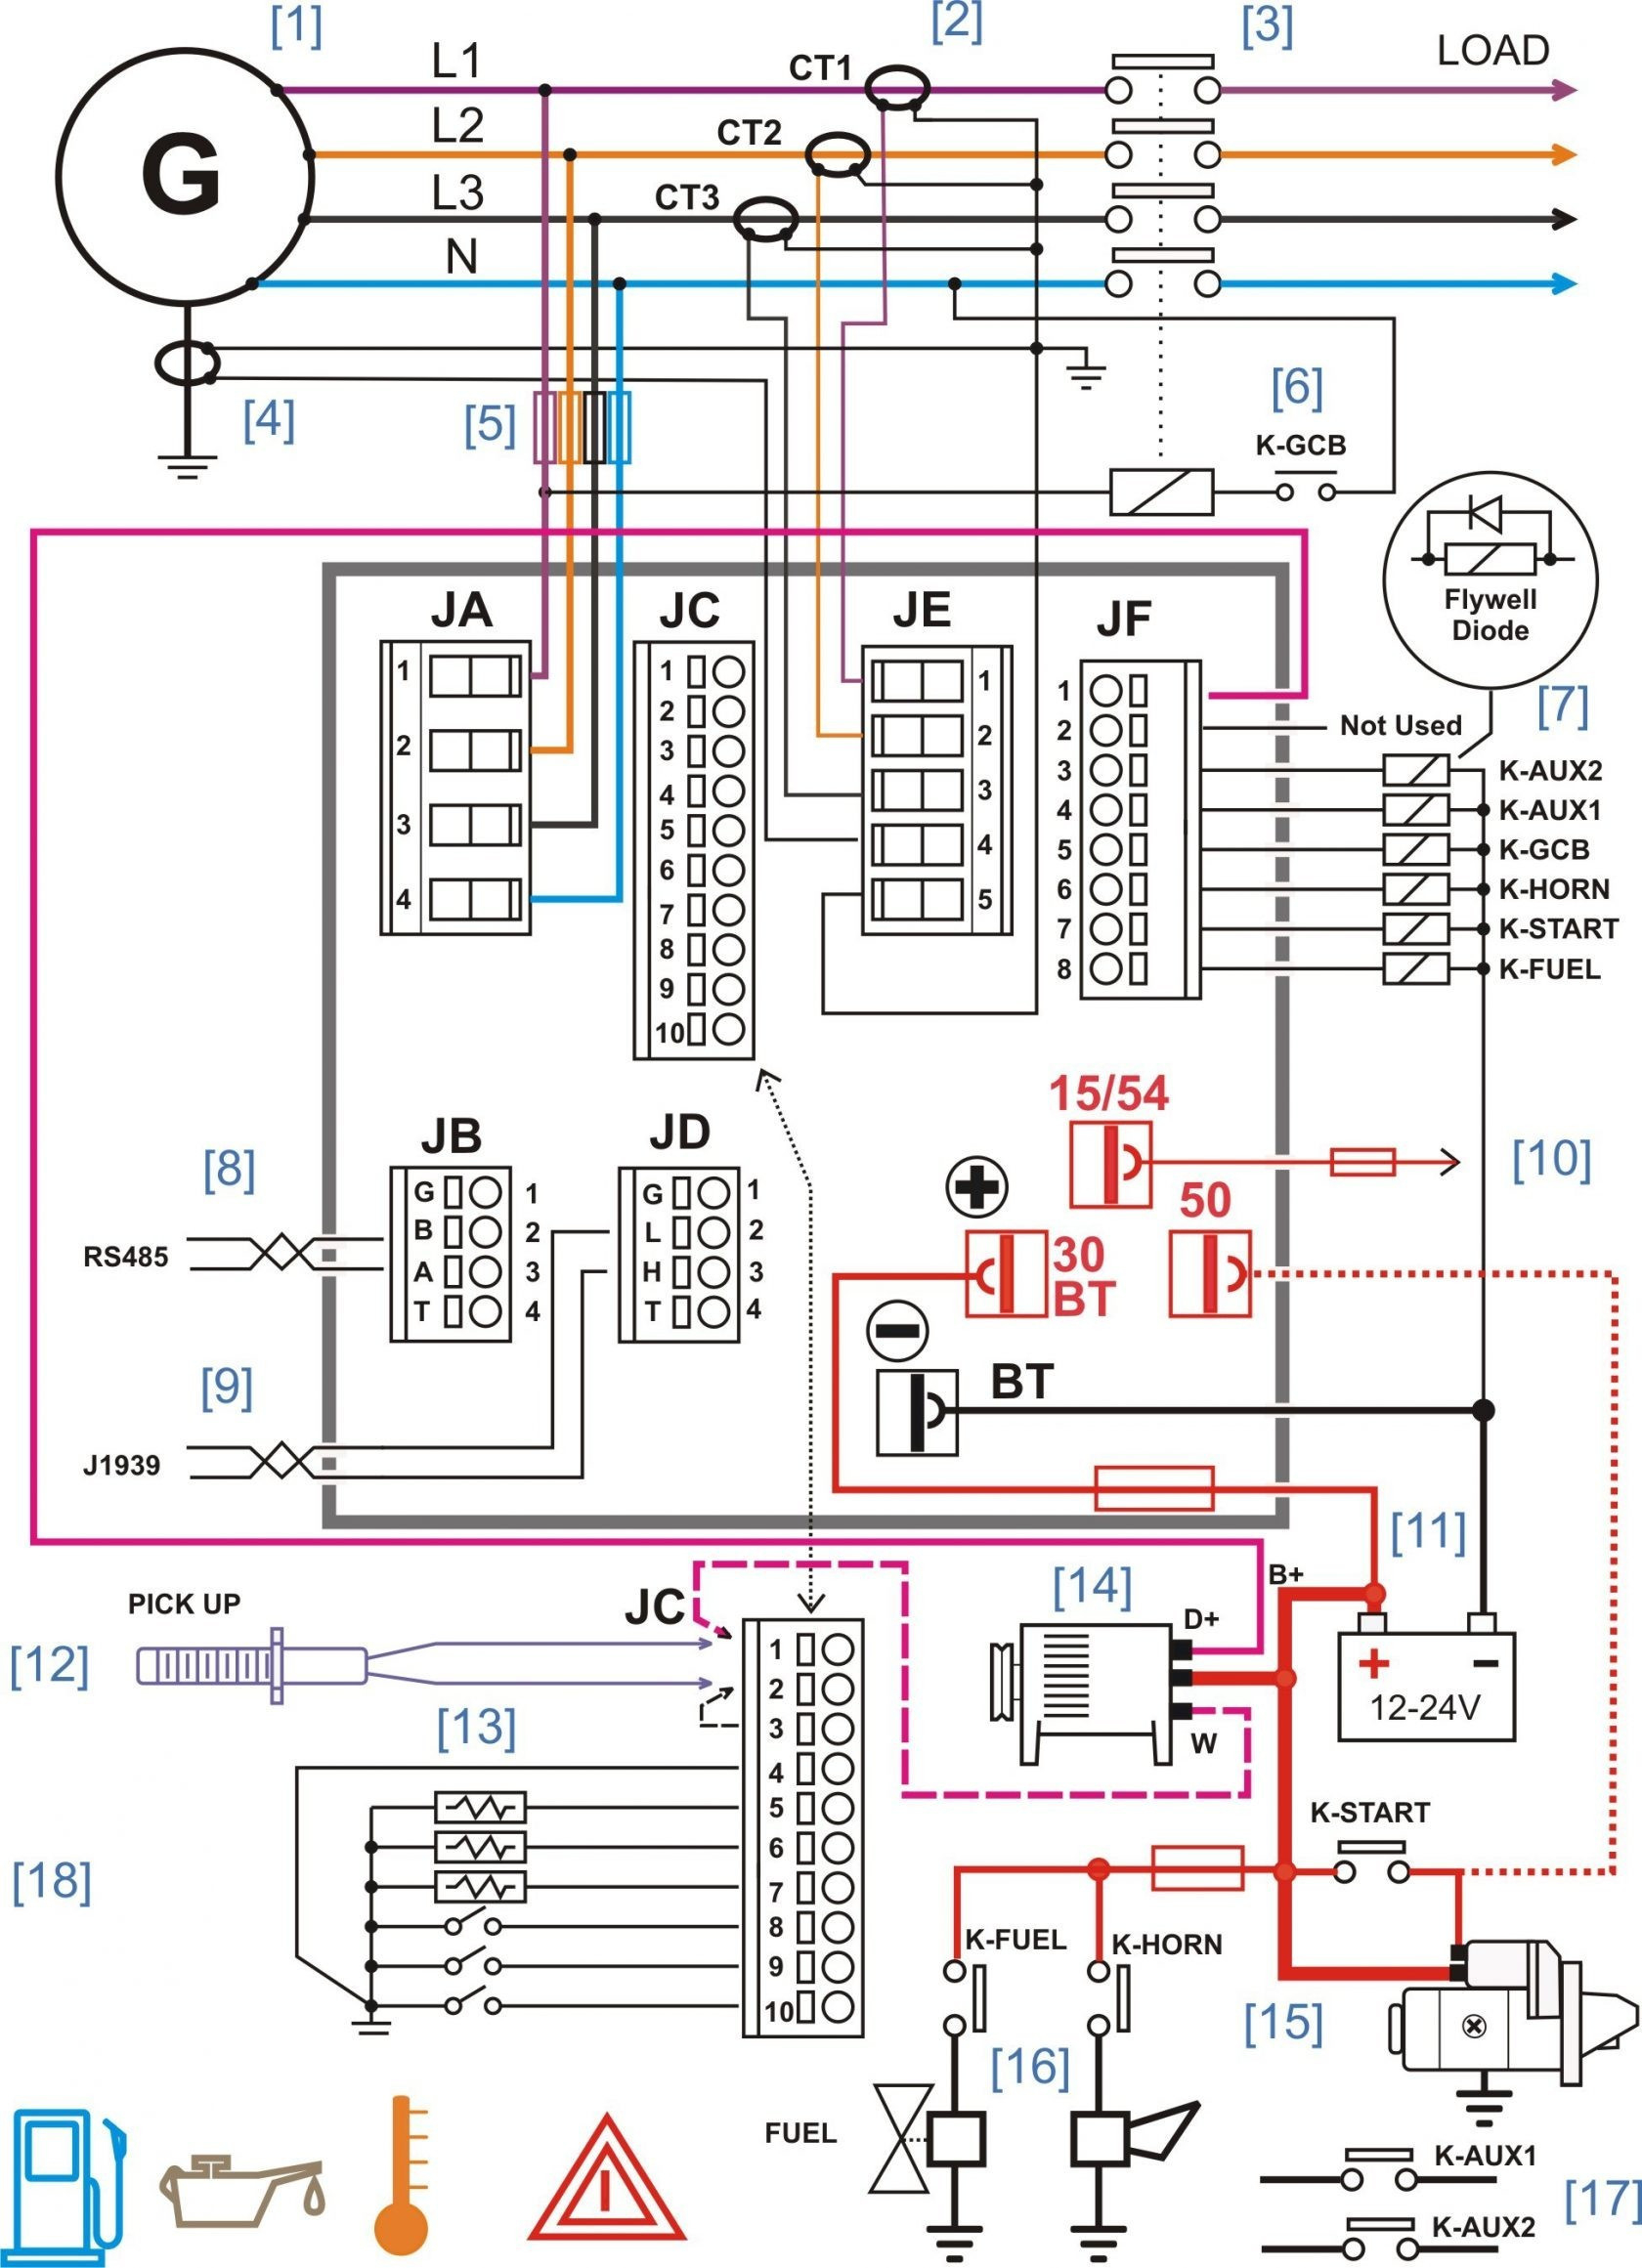 blaupunkt car audio wiring diagram Collection-peterbilt stereo wiring harness wire center u2022 rh celacode co 2006 peterbilt stereo wiring diagram 2012 9-j